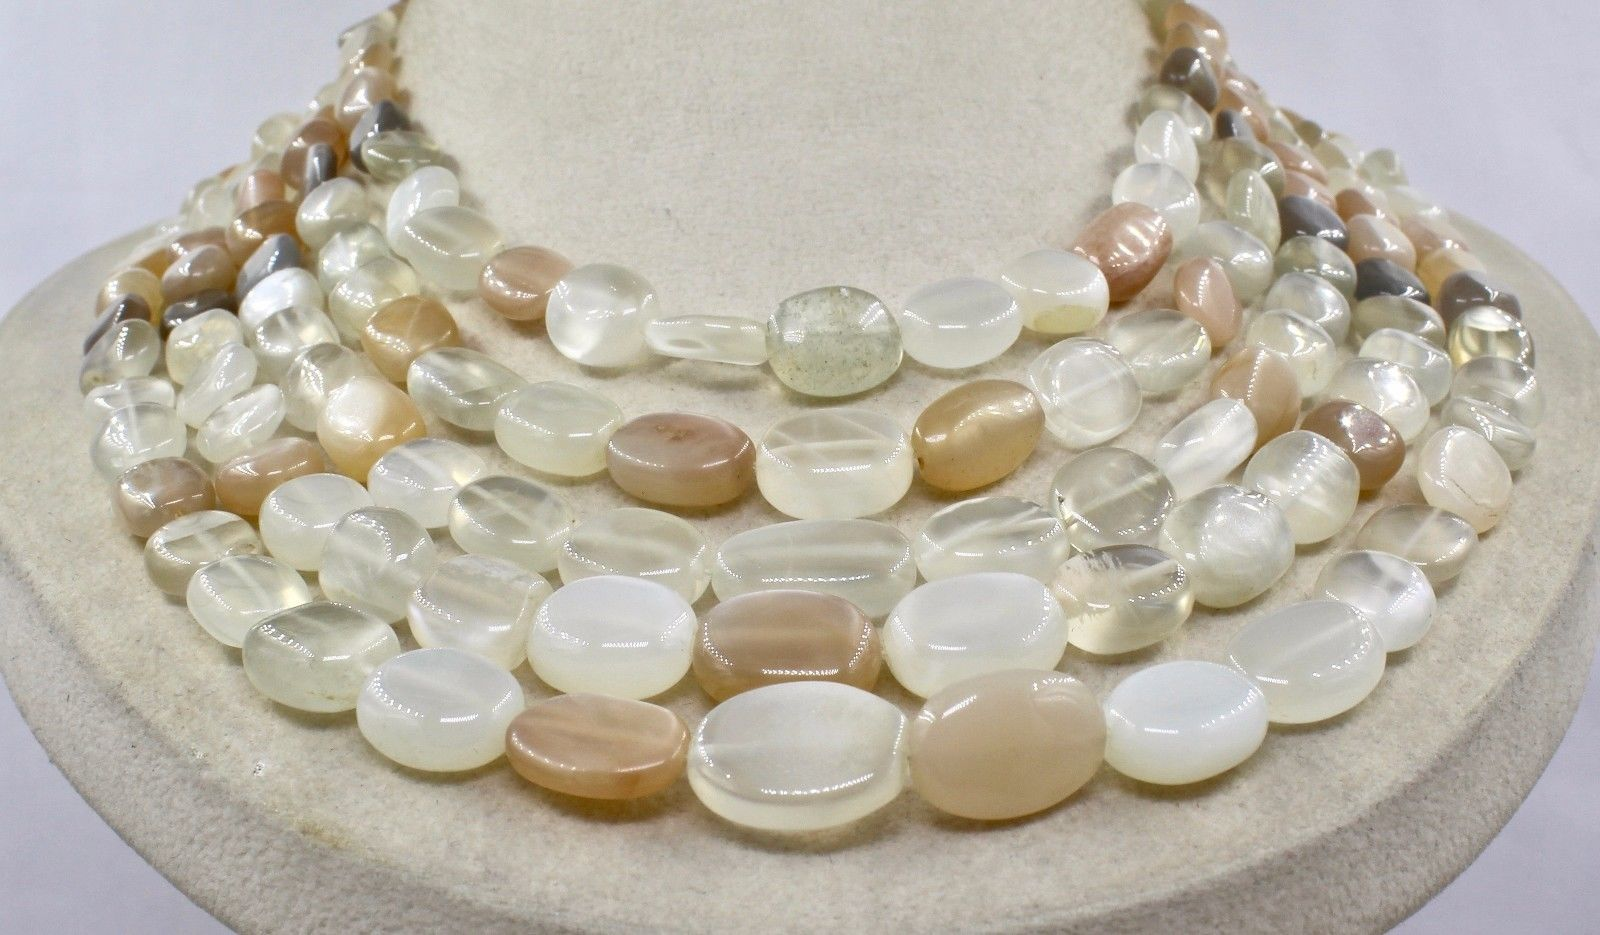 NATURAL MULTI MOONSTONE BEADS CABOCHON 5 LINE 950 CTS GEMSTONE LADIES NECKLACE image 4